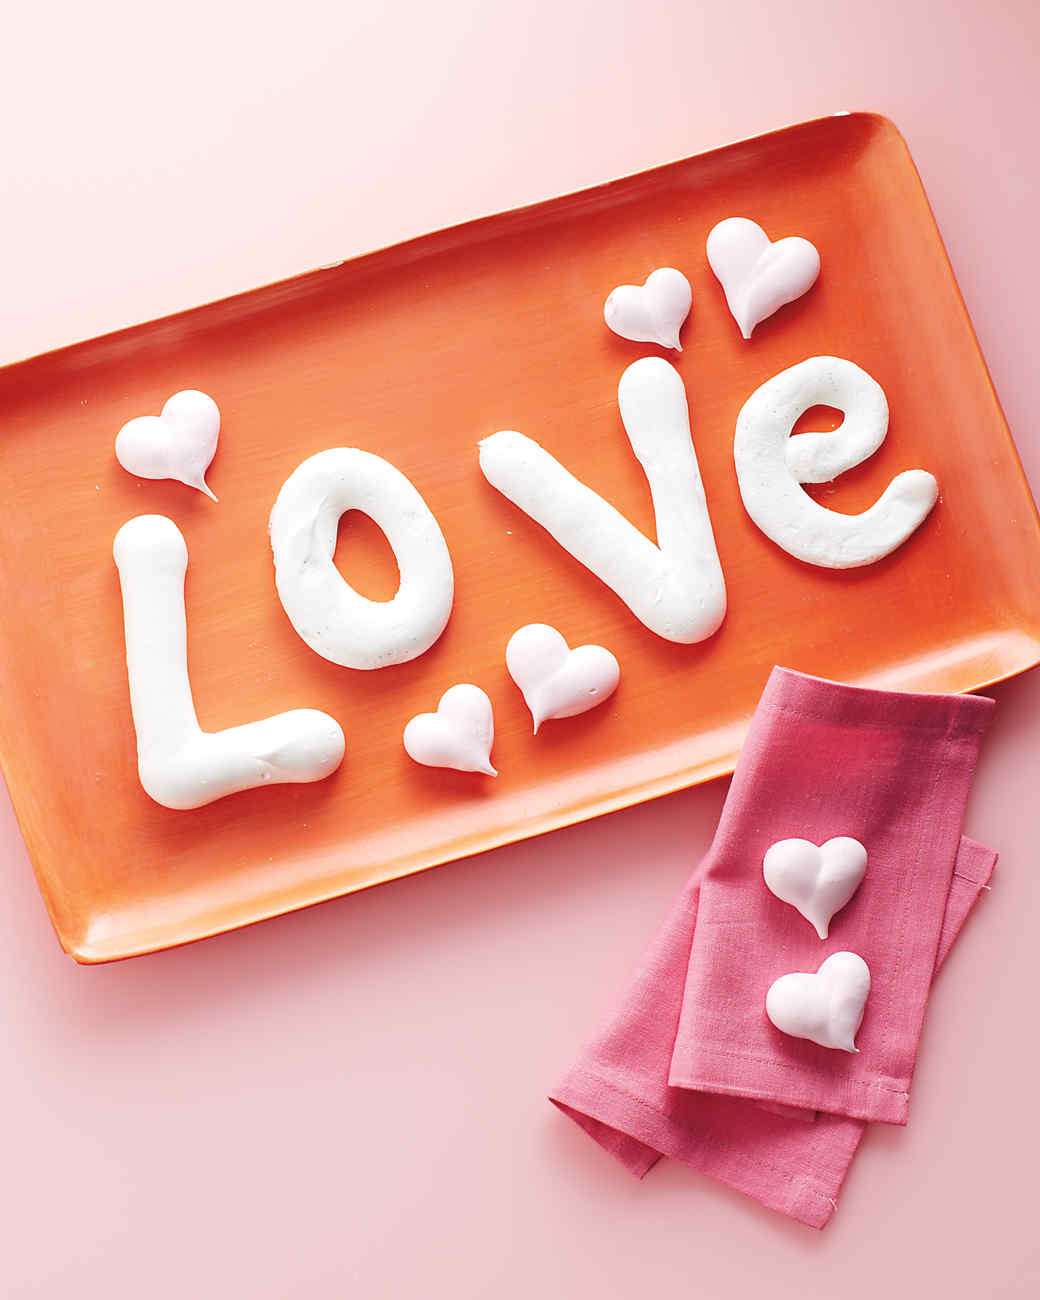 37 Valentines Day Crafts To Make From The Heart